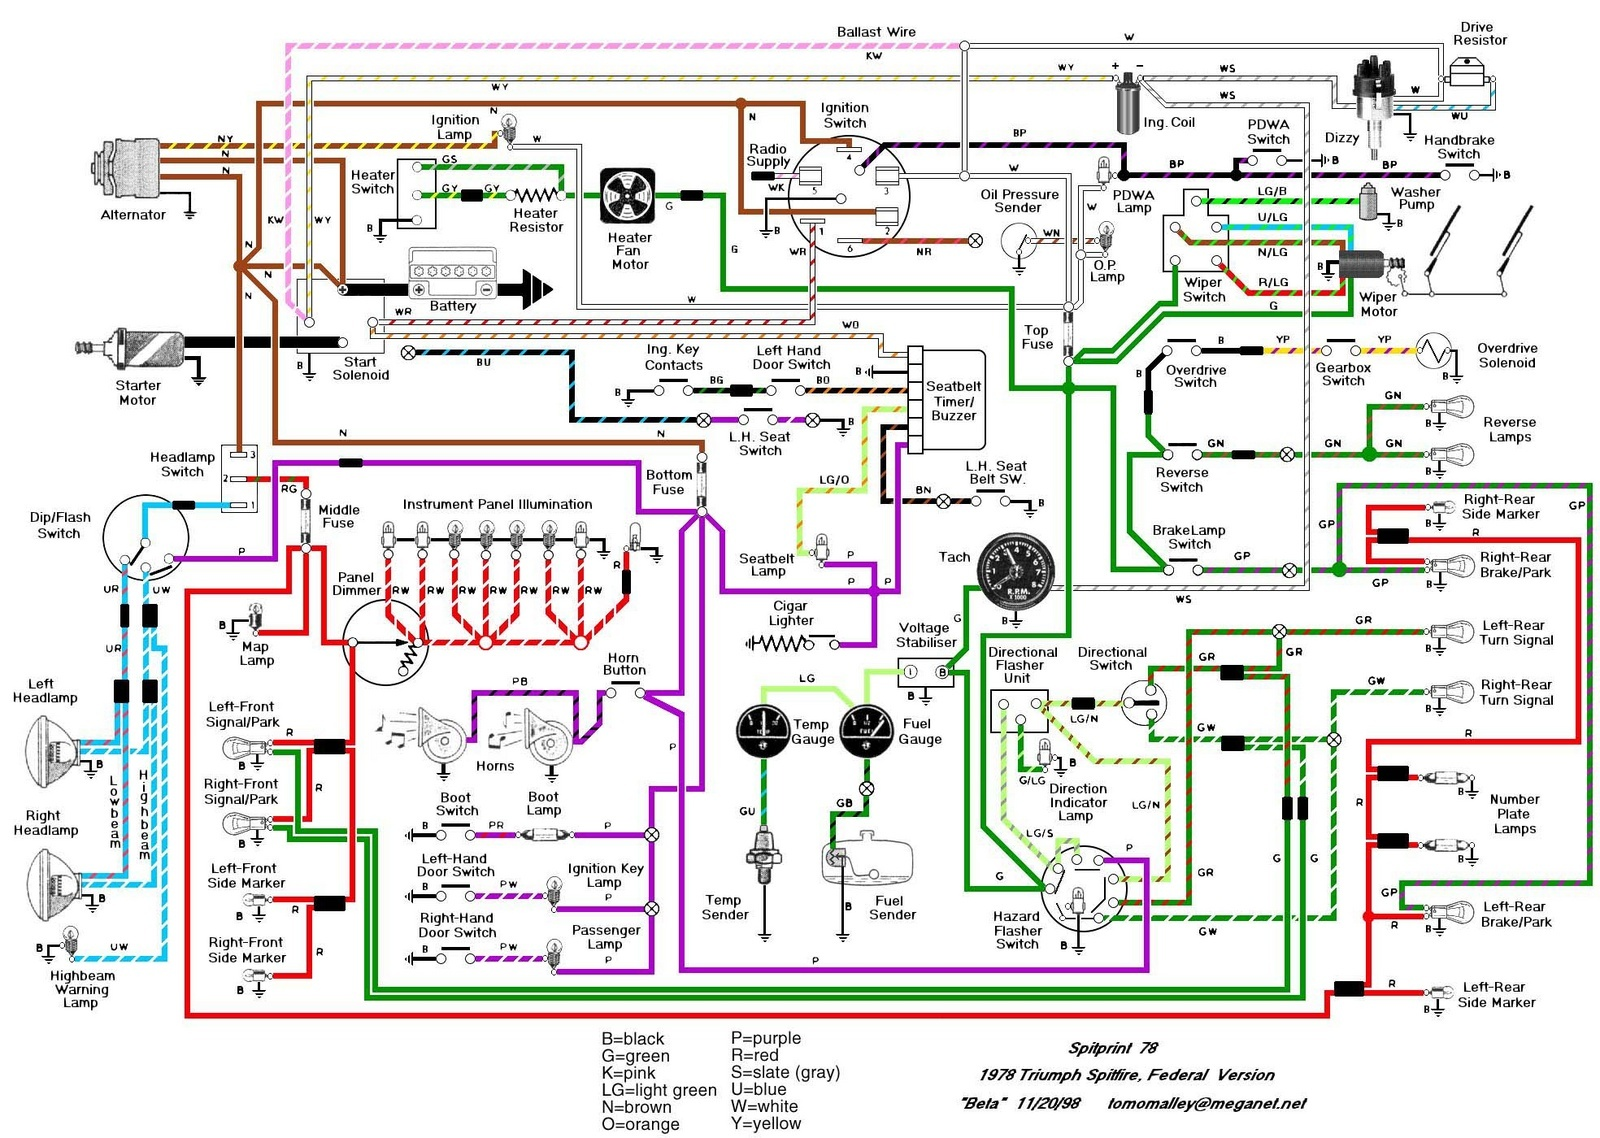 1969 Mgb Wiring Diagram -Relay Coil Wiring Diagram | Begeboy Wiring Diagram  SourceBegeboy Wiring Diagram Source